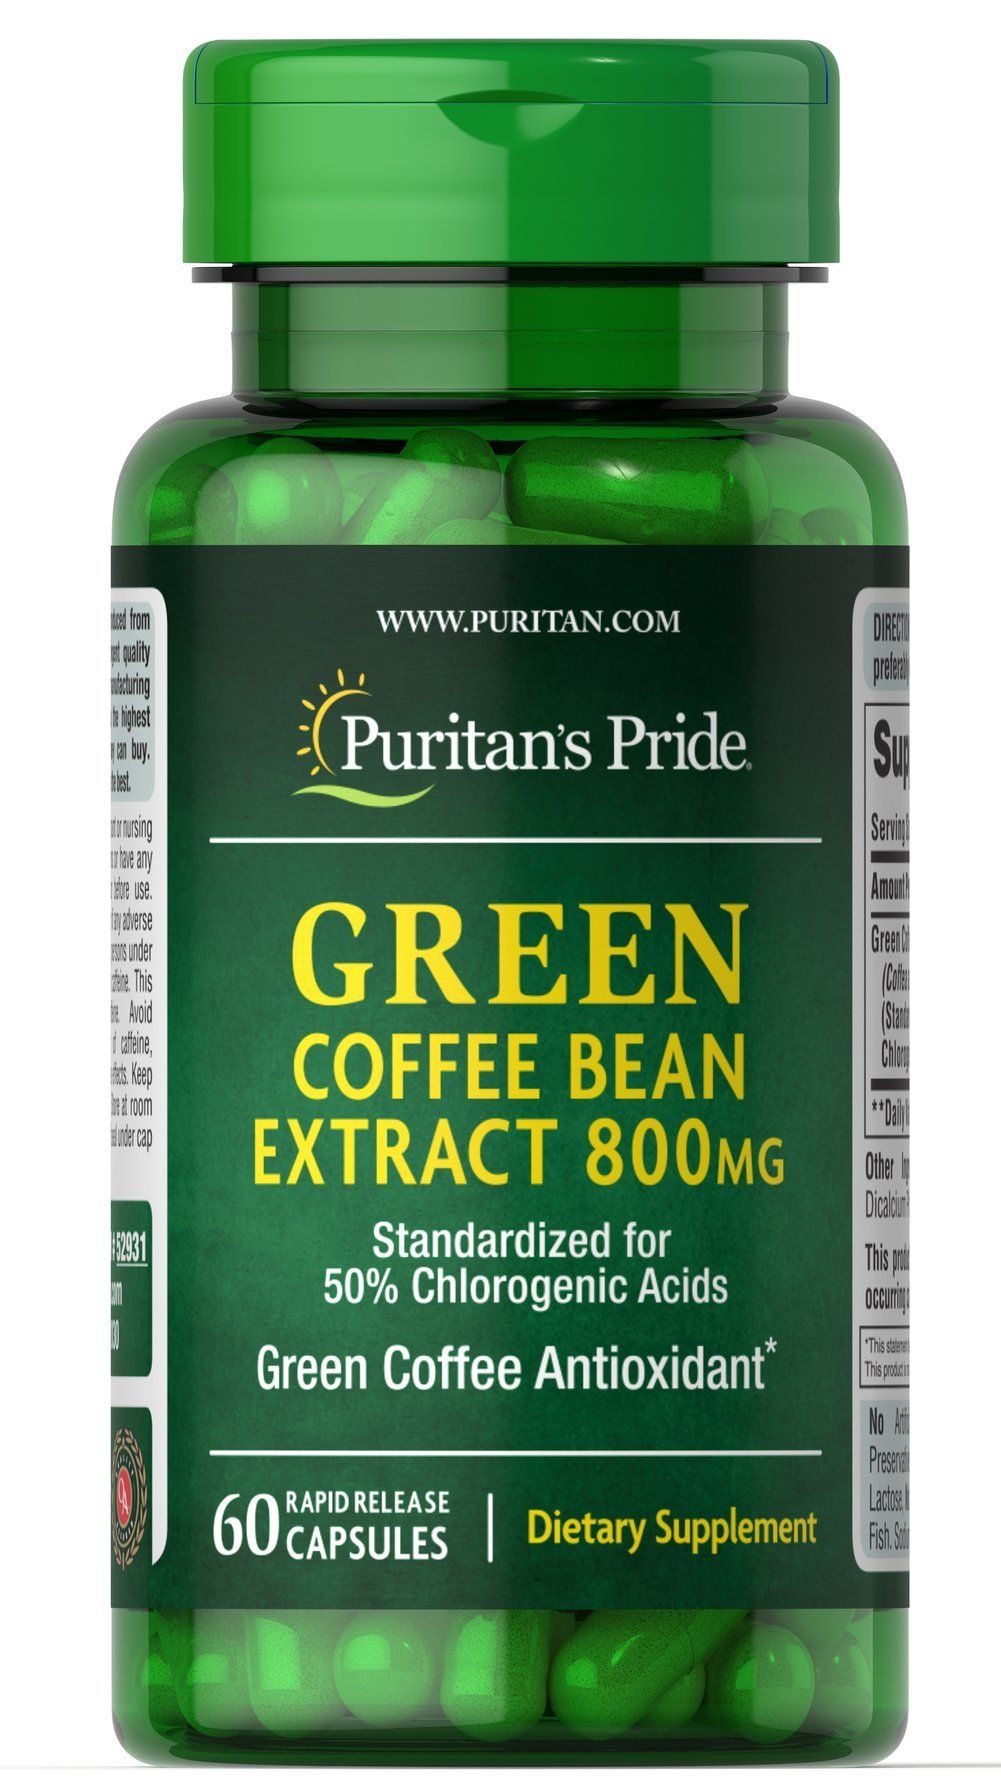 Puritans Pride Green Coffee Bean Extract 800 mg60 Capsules